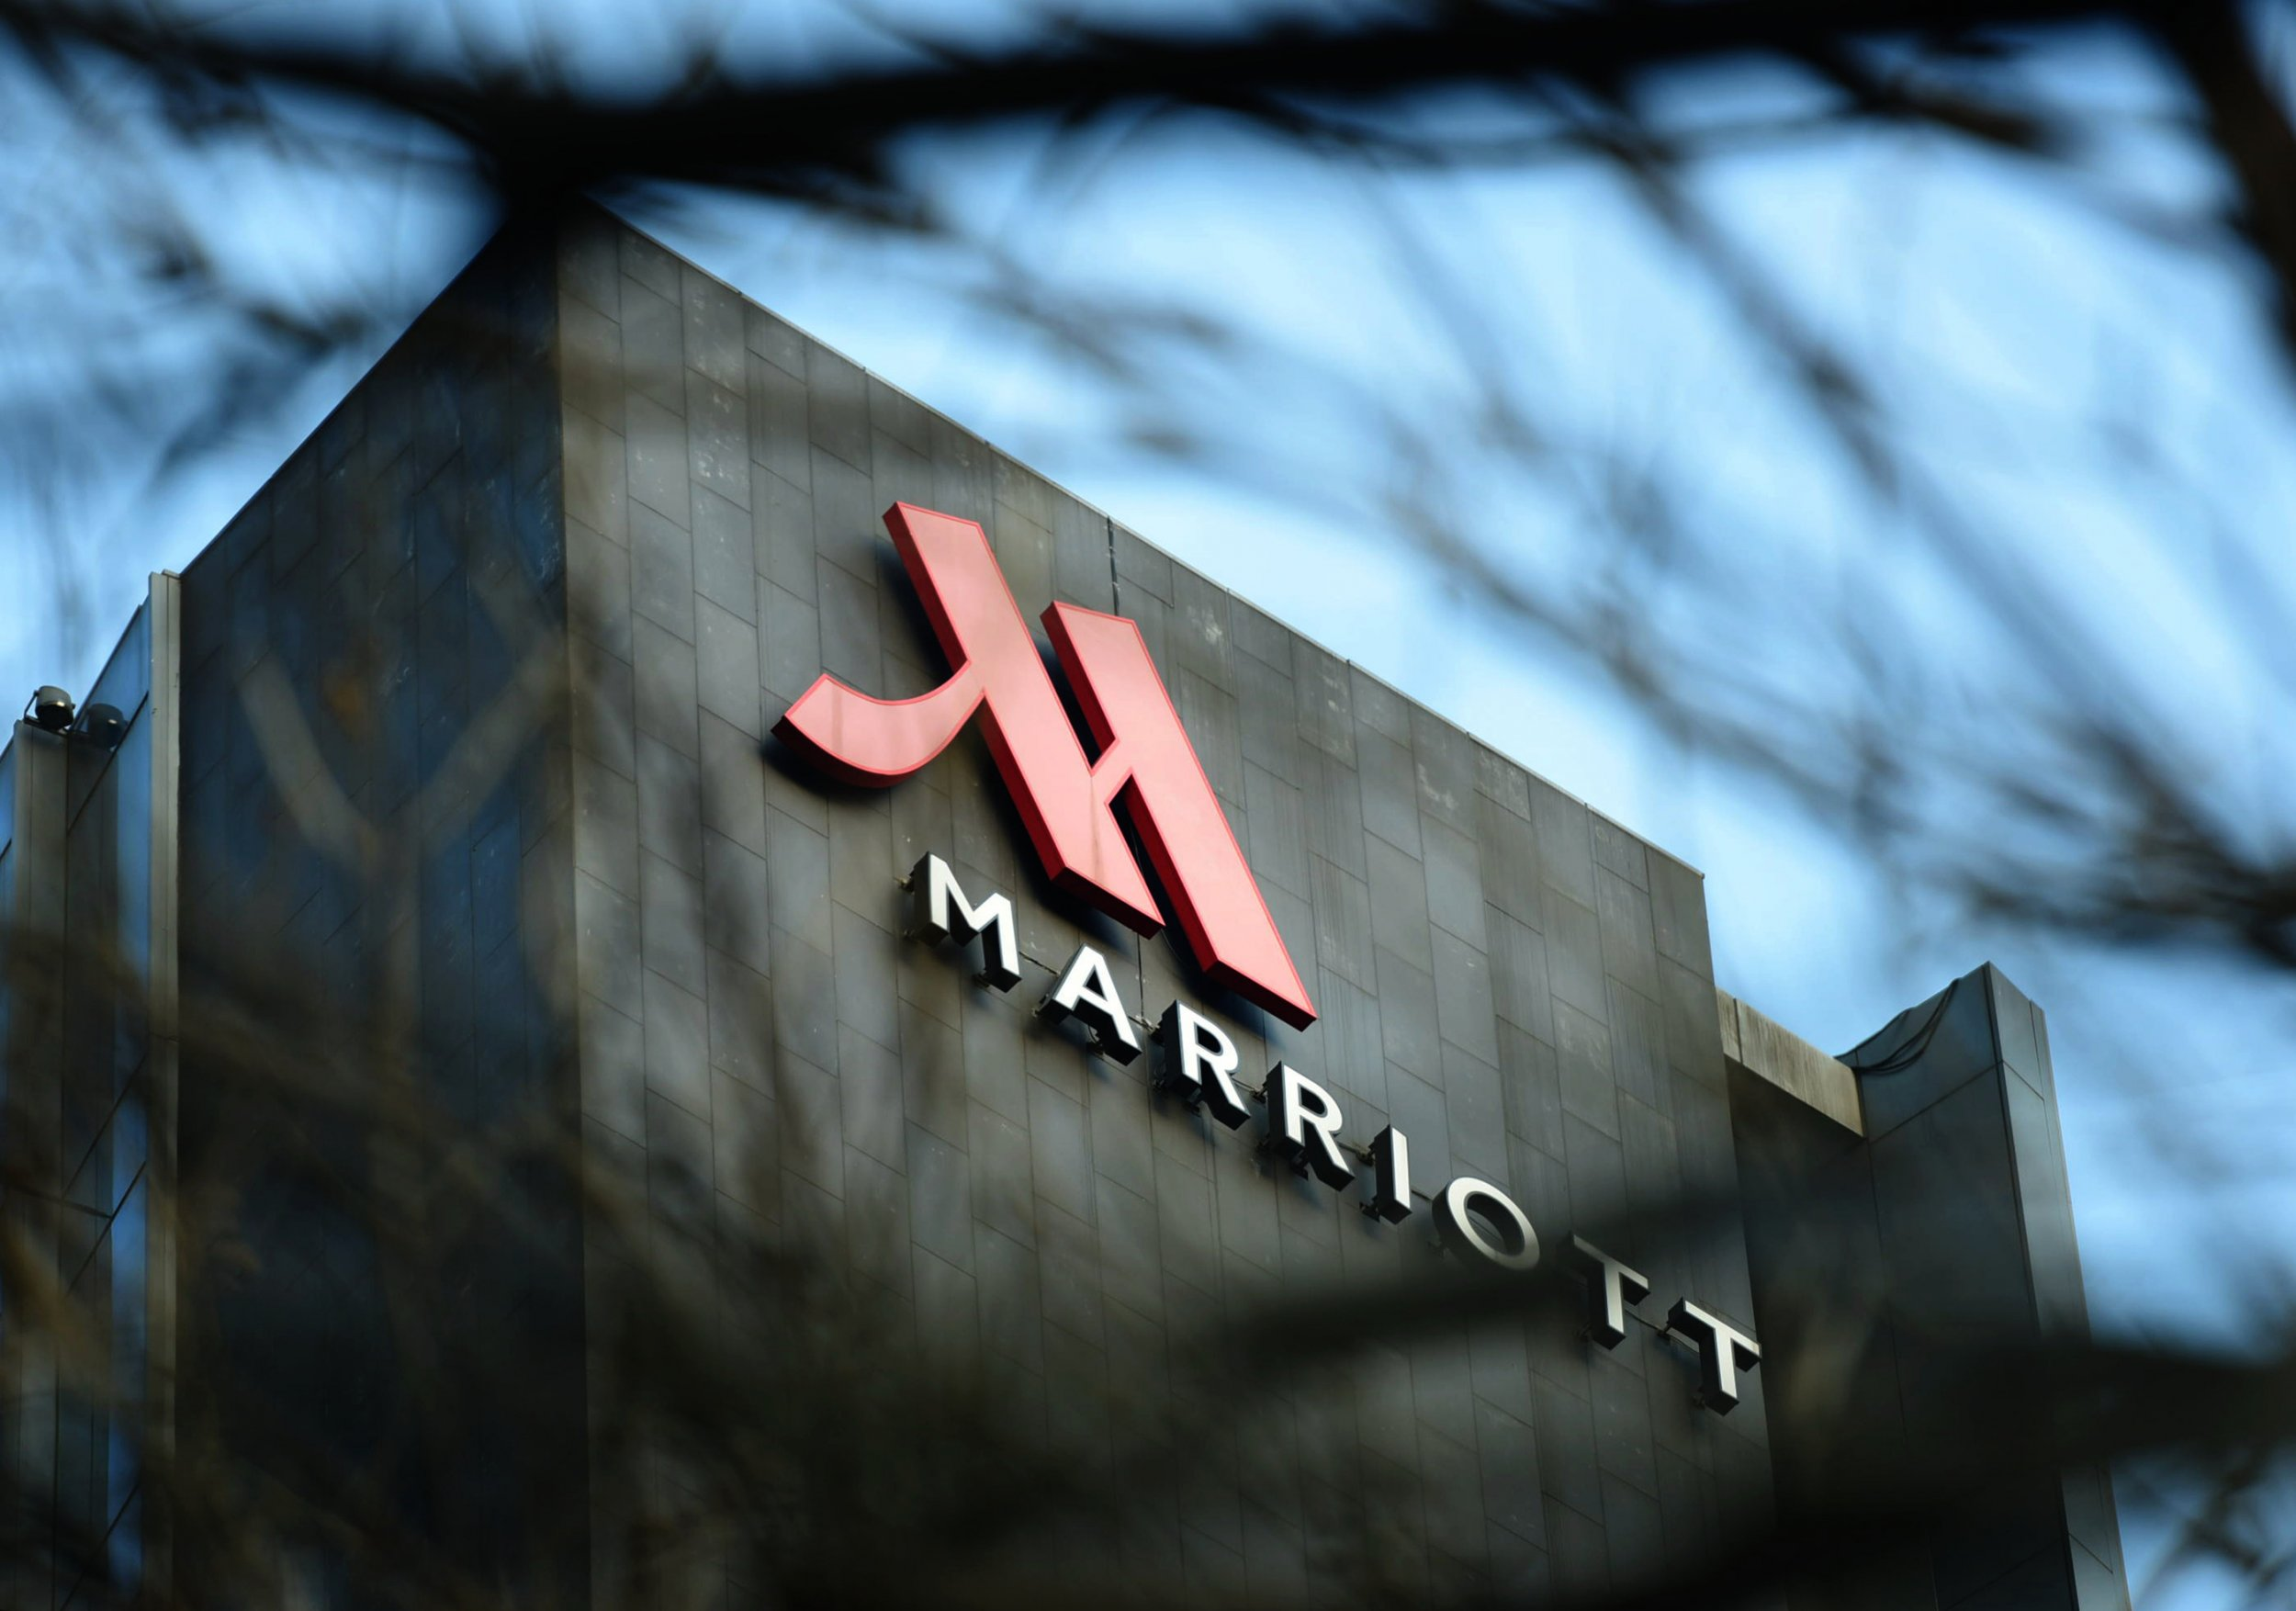 Marriott's guest reservation database breached, data of 500 million guests impacted